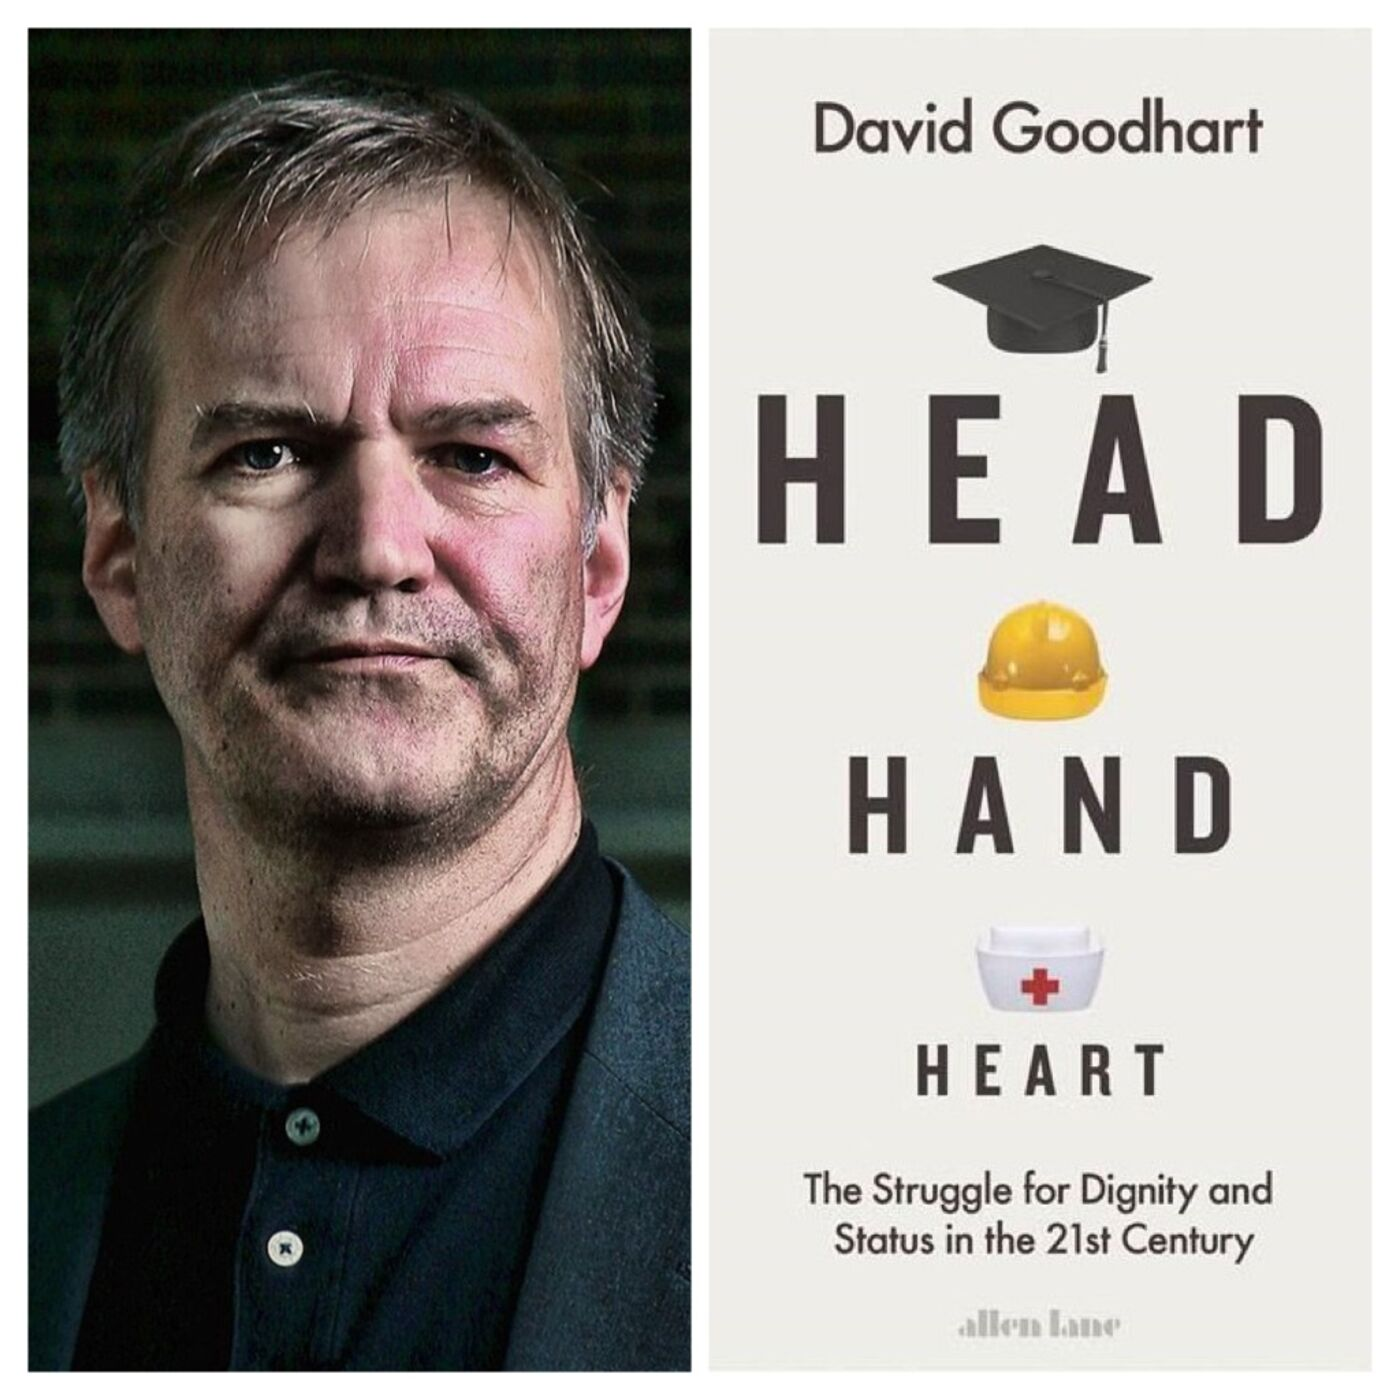 David Goodhart on Head, Hand and Heart and the Road to Somewhere